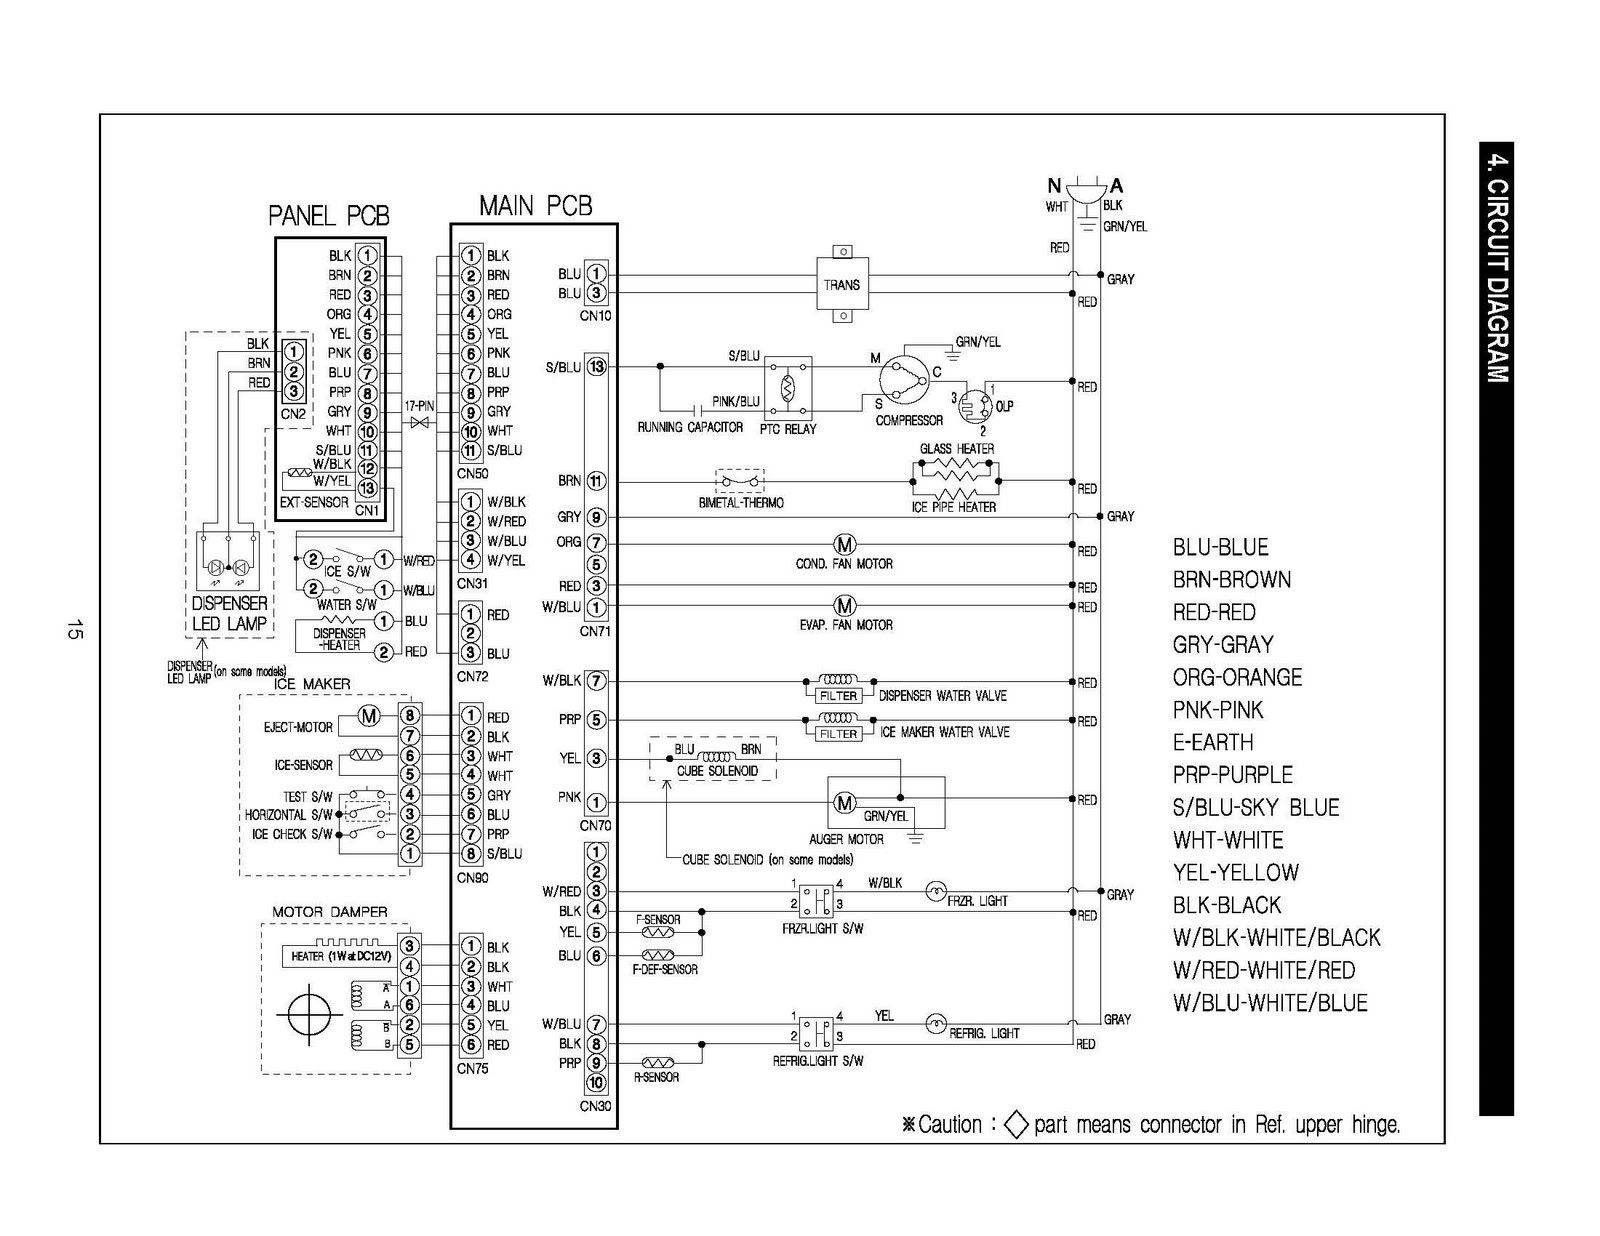 Ge Refrigerator Wiring Diagram Best Of Ge Monogram Wiring Diagram - Ge Refrigerator Wiring Diagram